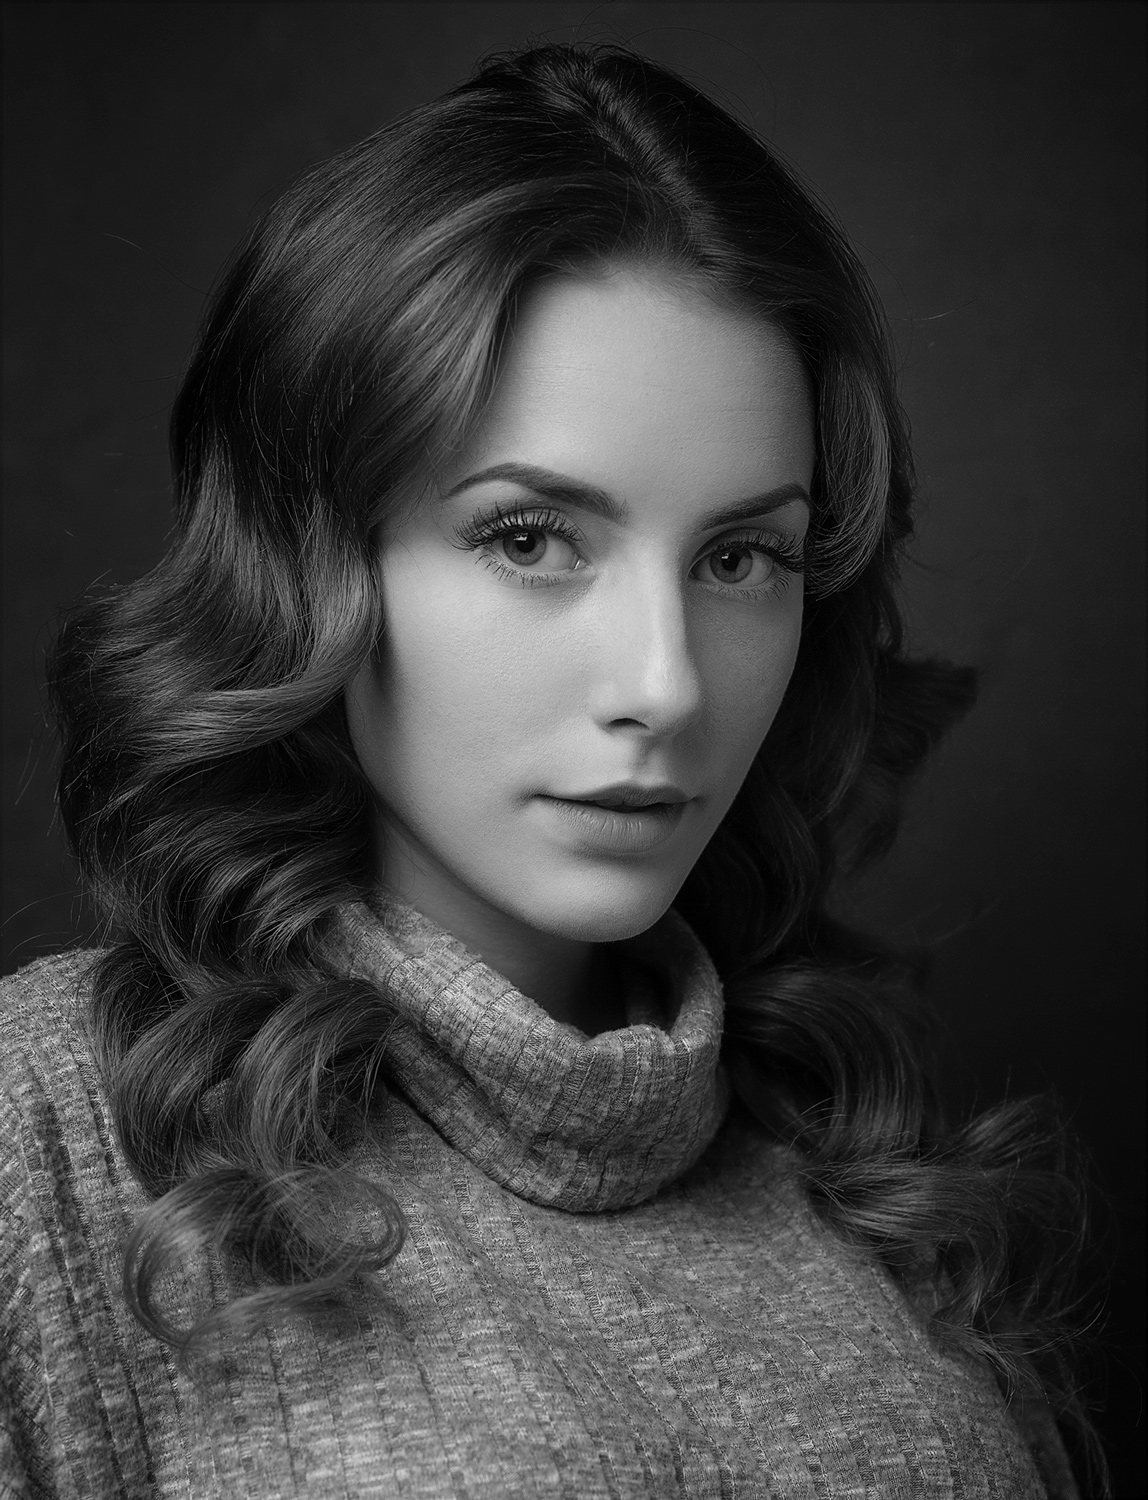 black and white headshot of a woman